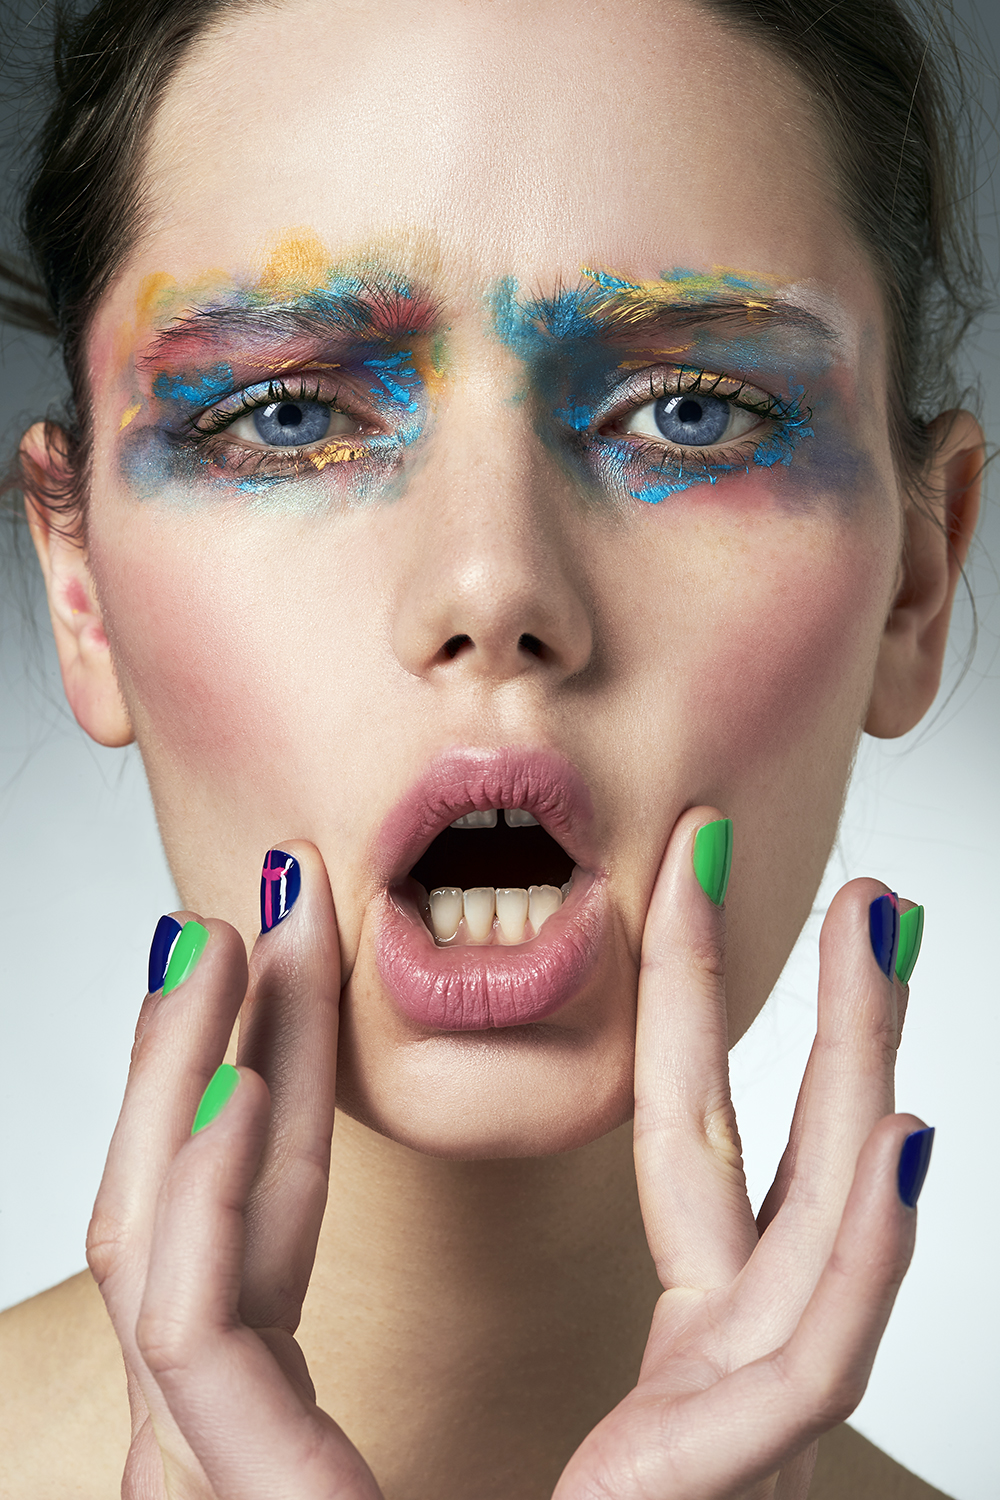 Maquillaje tendencias. The Artist Talents School